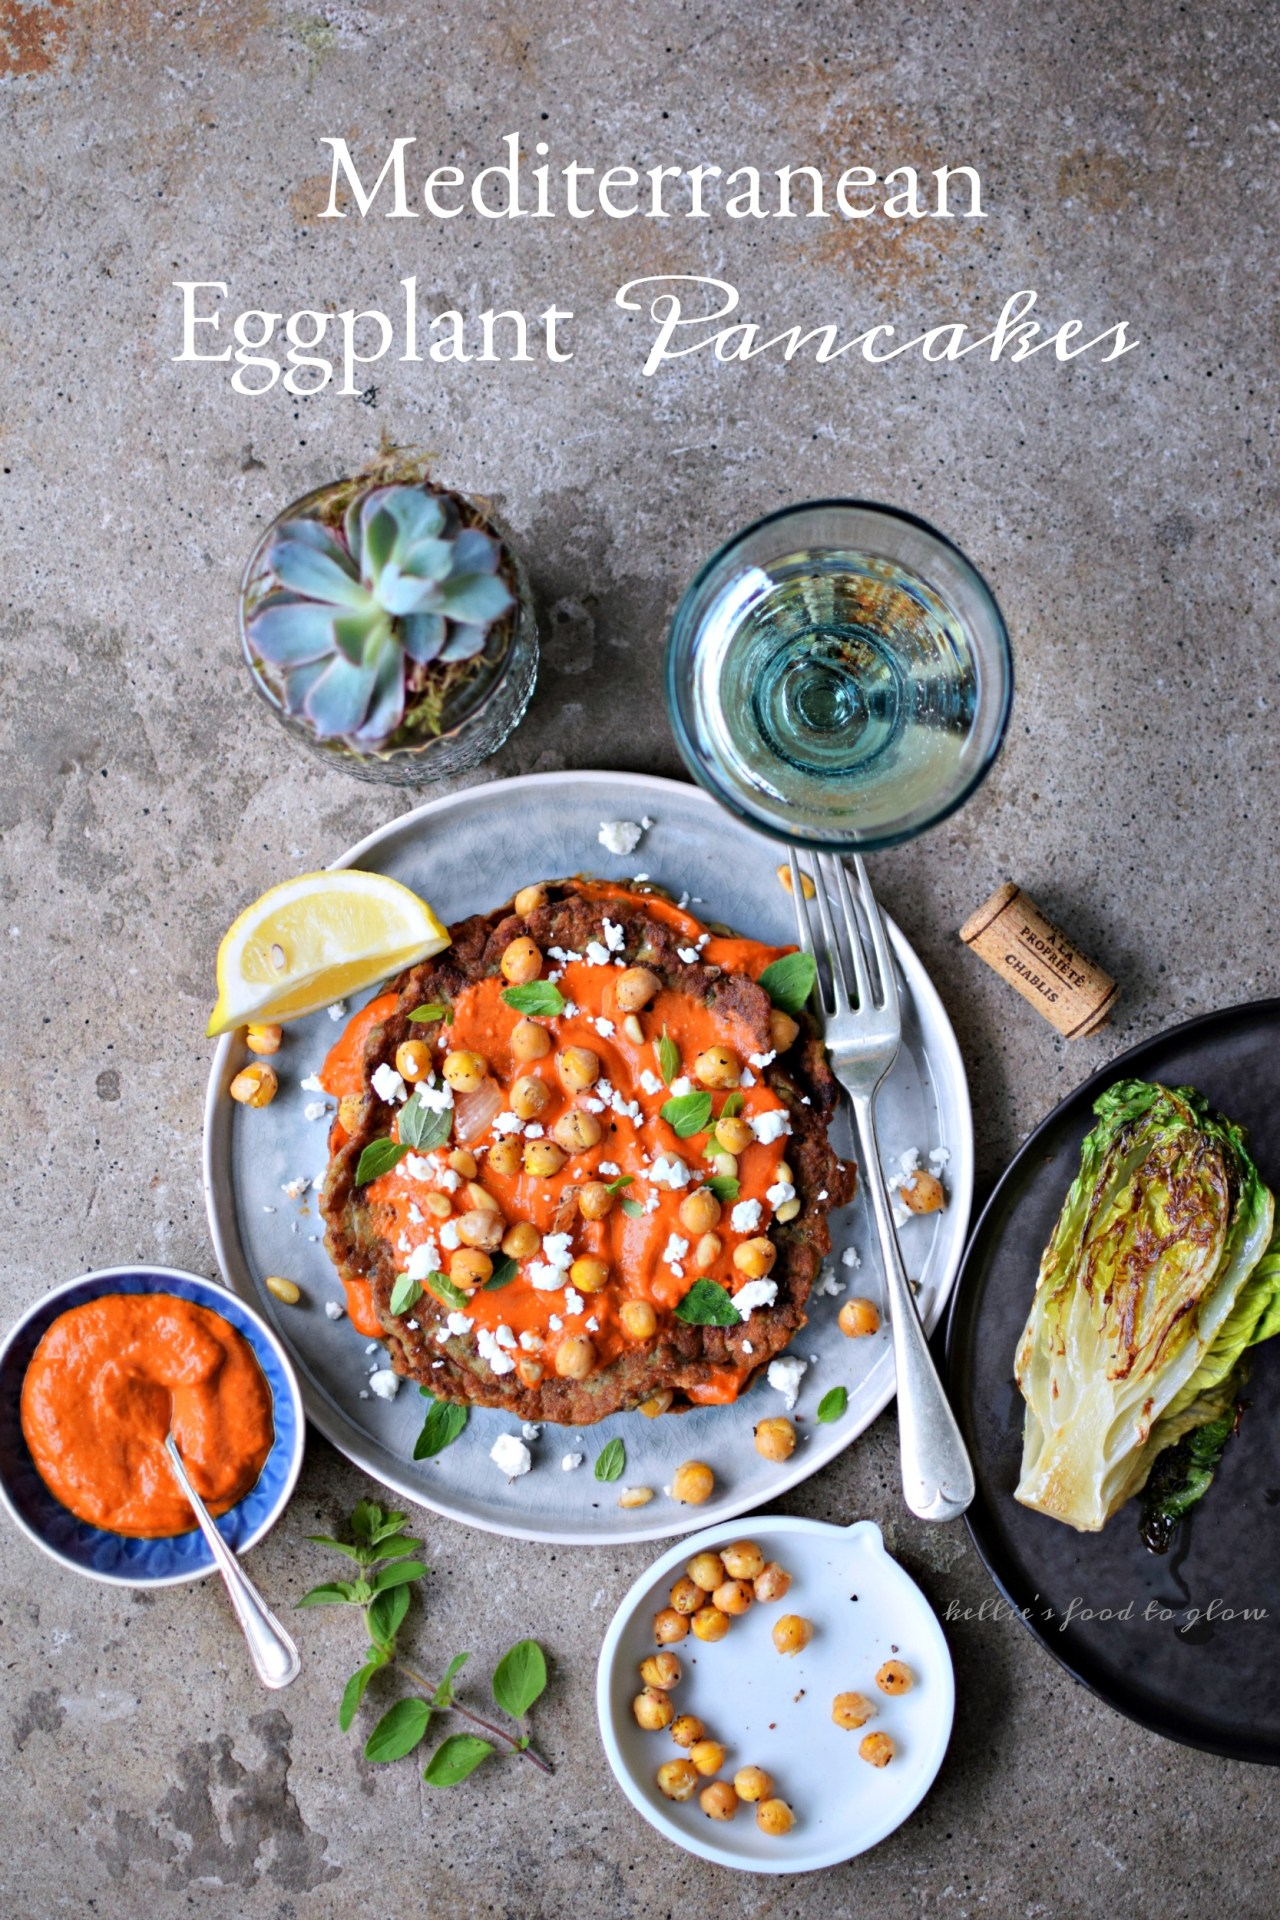 Soft savory pancakes of roasted aubergine, onion marmalade and summer herbs, barely held together with a whisper of flour and eggs, and served with a smear of sweet red pepper sauce. Make-ahead steps and a do-everything sauce = easy summer lunches and appetizers.